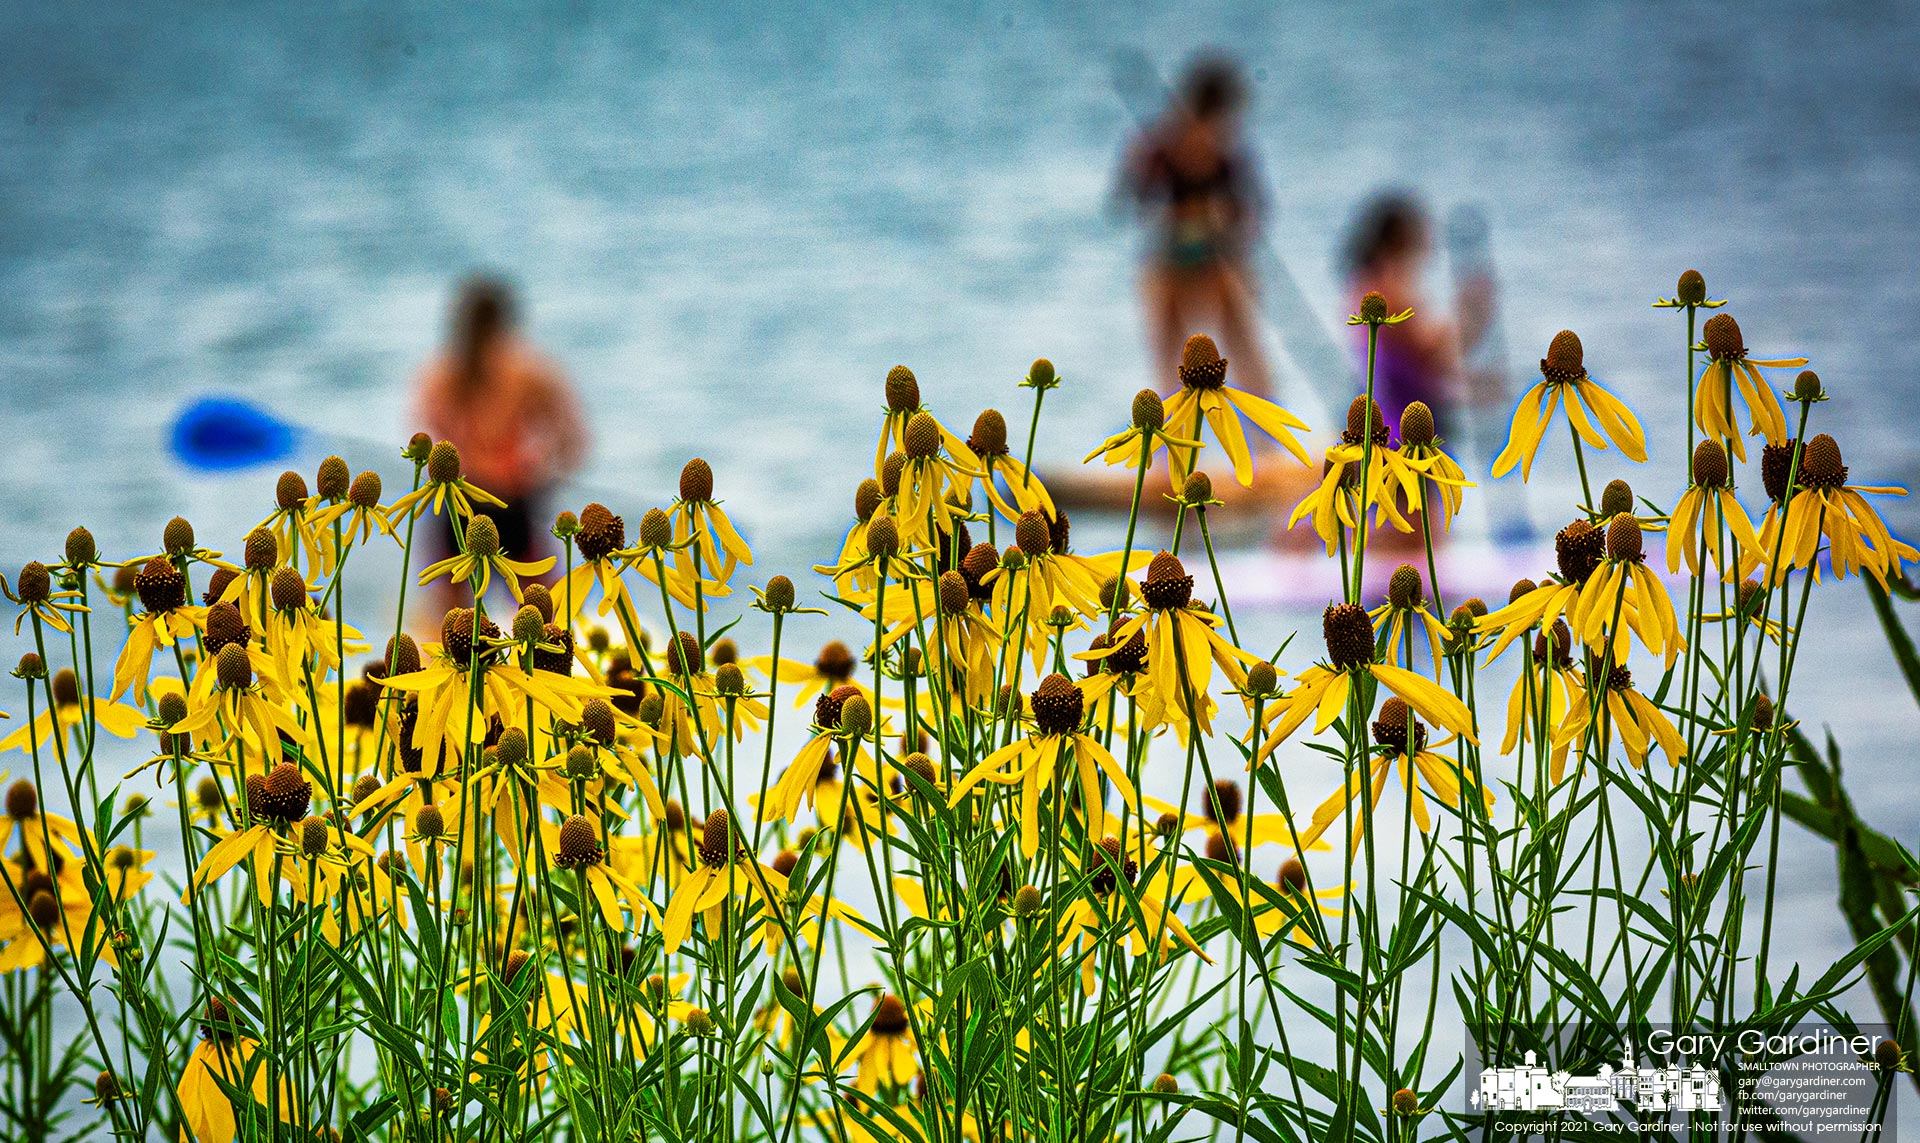 Paddleboarders on Hoover Reservoir pass by a field of wildflowers growing near the Walnut Street boatramp. My Final Photo for July 10, 2021.